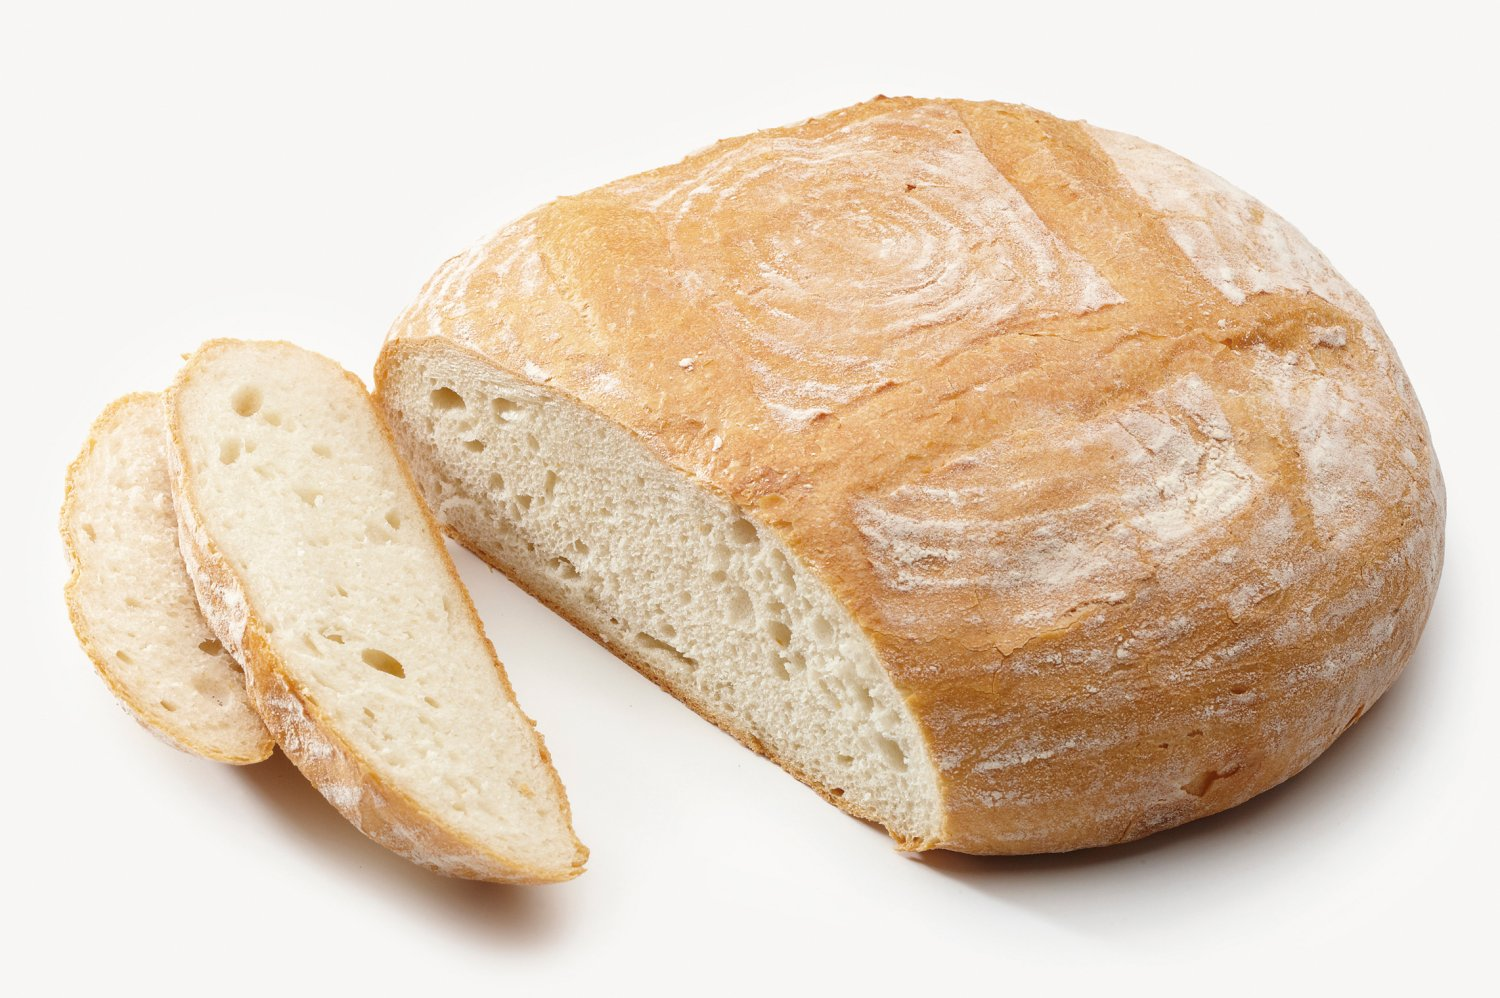 White bread - Gorenje